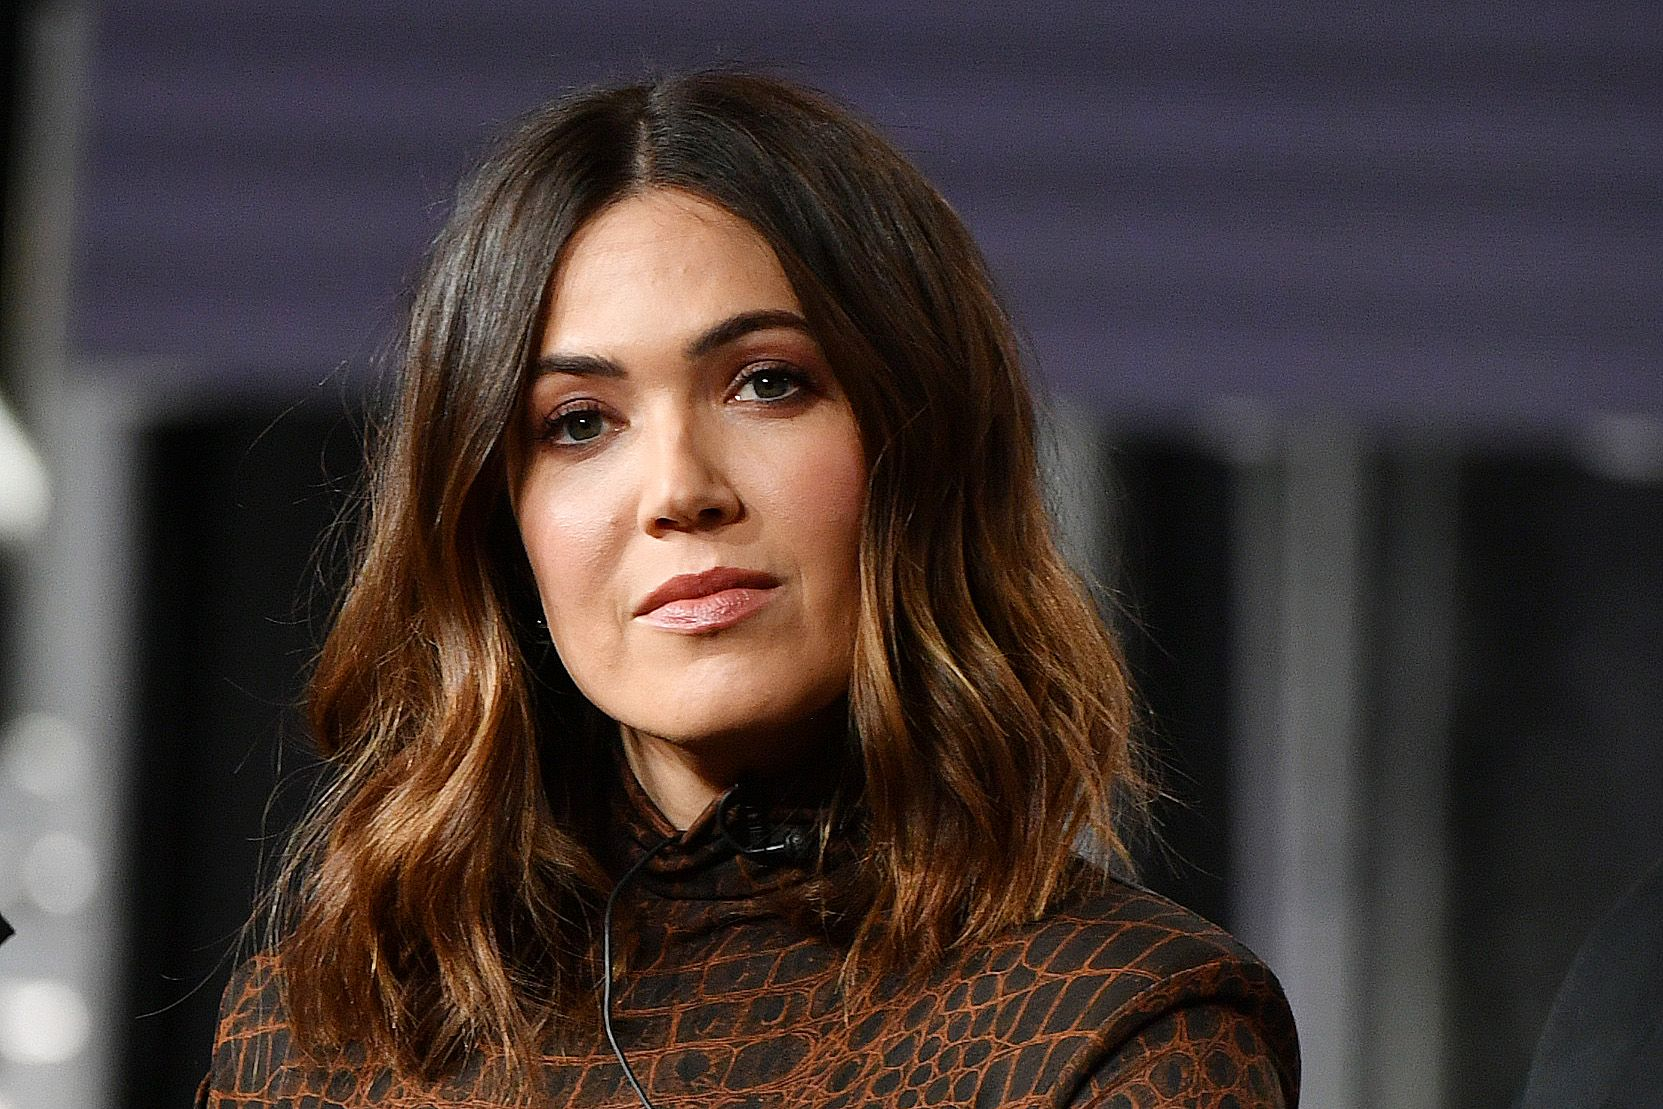 mandy-moore-opens-up-about-her-fertility-issues-before-getting-pregnant-she-was-about-to-undergo-surgery-when-she-found-out